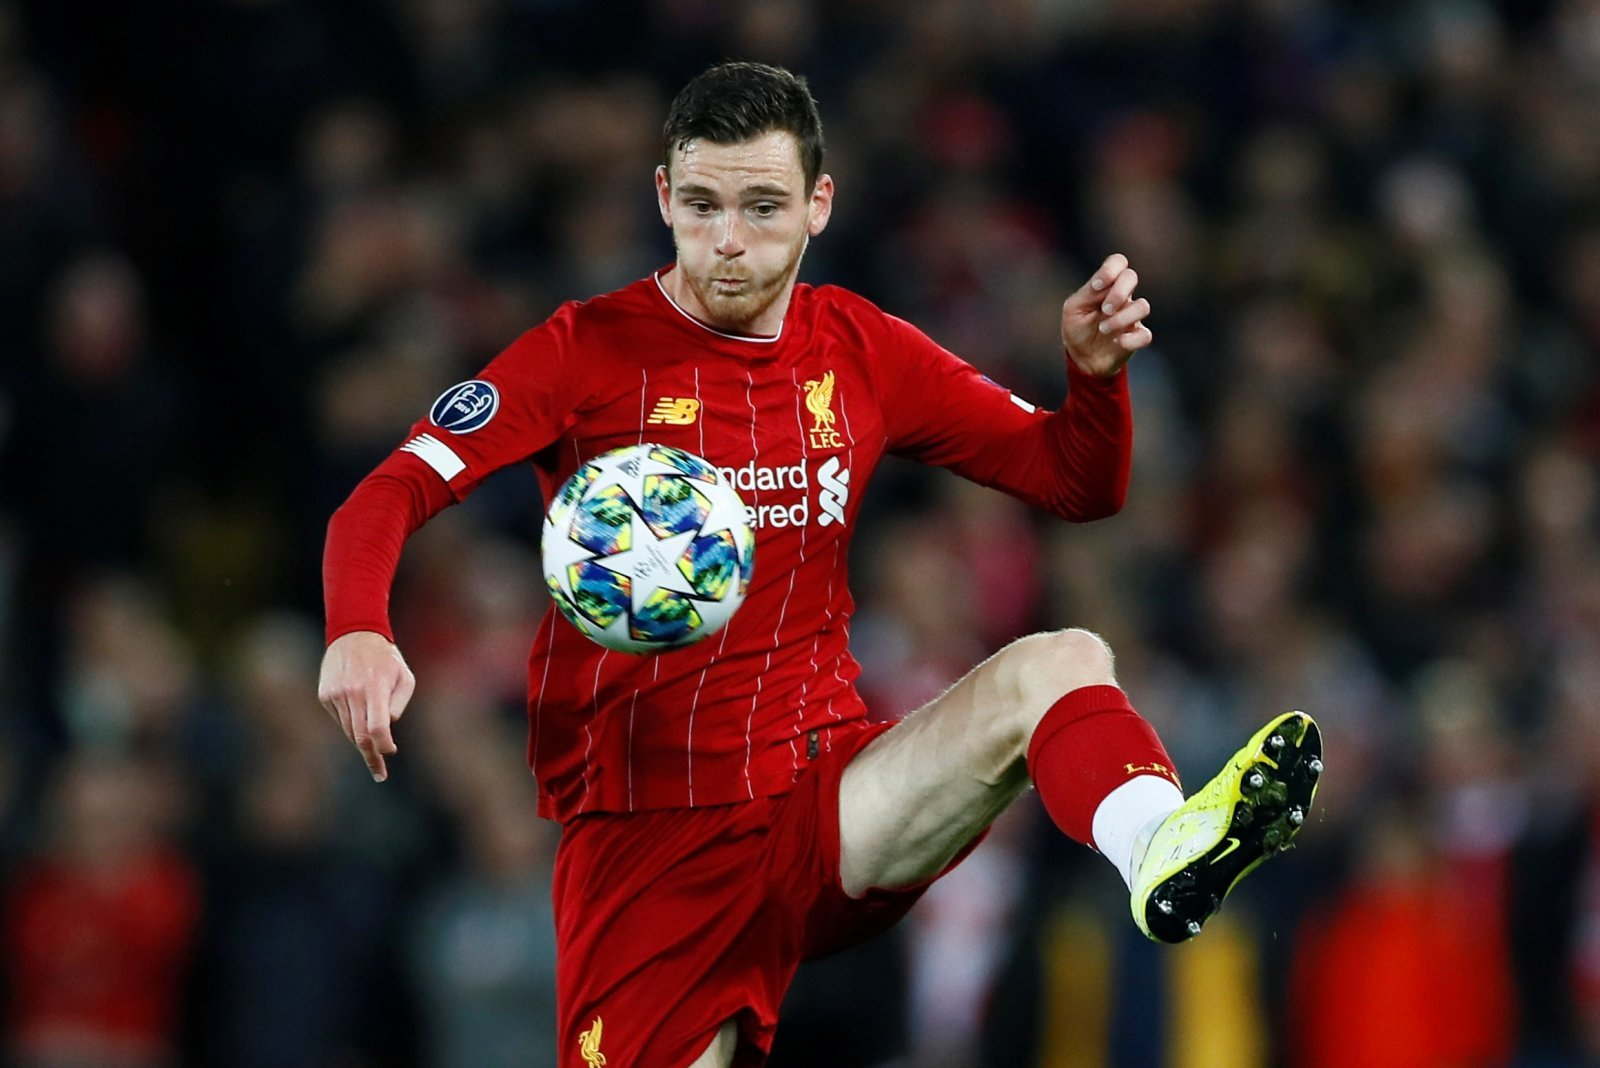 Liverpool: Fans loved Andy Robertson's joke about Alex Oxlade-Chamberlain